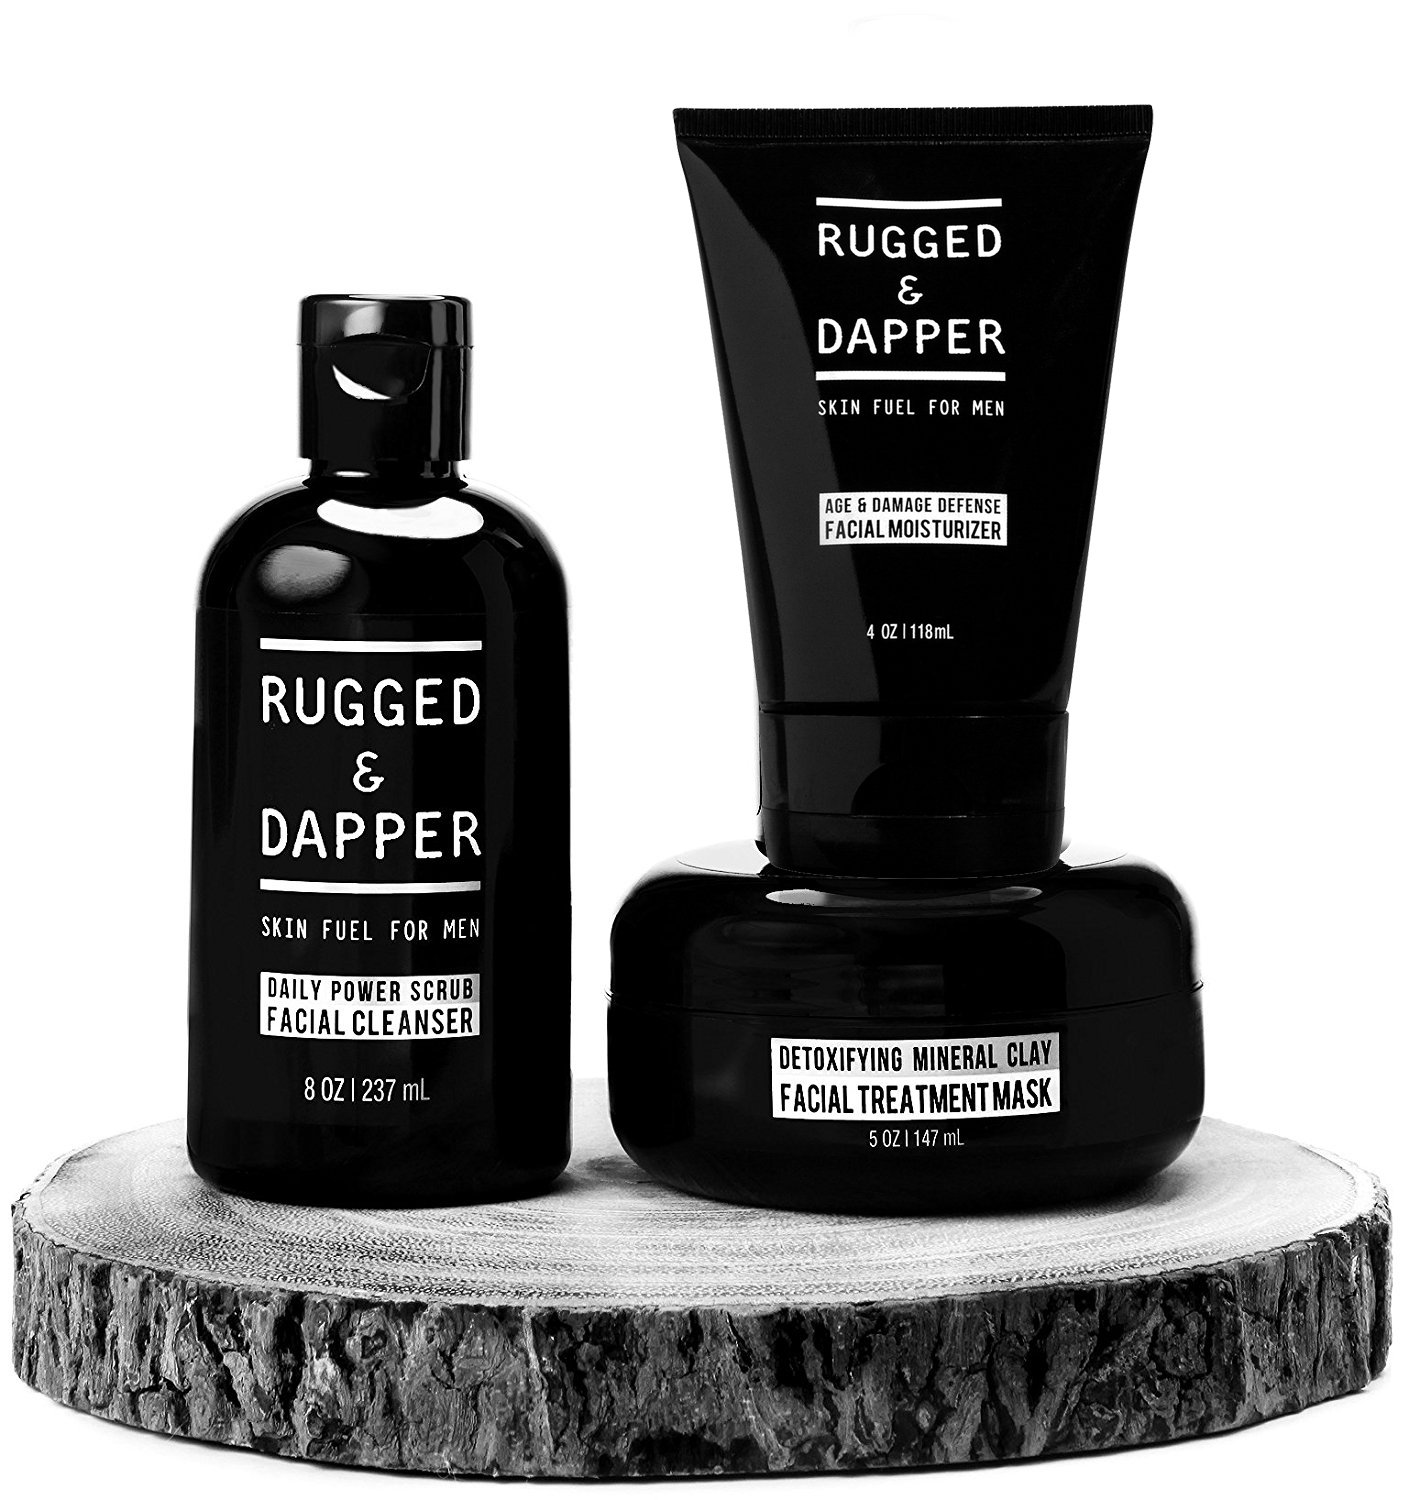 All-In-One Essential Skincare Set For Men - Grooming Kit - Age + Damage Defense Facial Moisturizer - Daily Power Scrub Cleanser - Detox Mineral Clay Facial Mask - Natural & Certified Organic by RUGGED & DAPPER (Image #1)